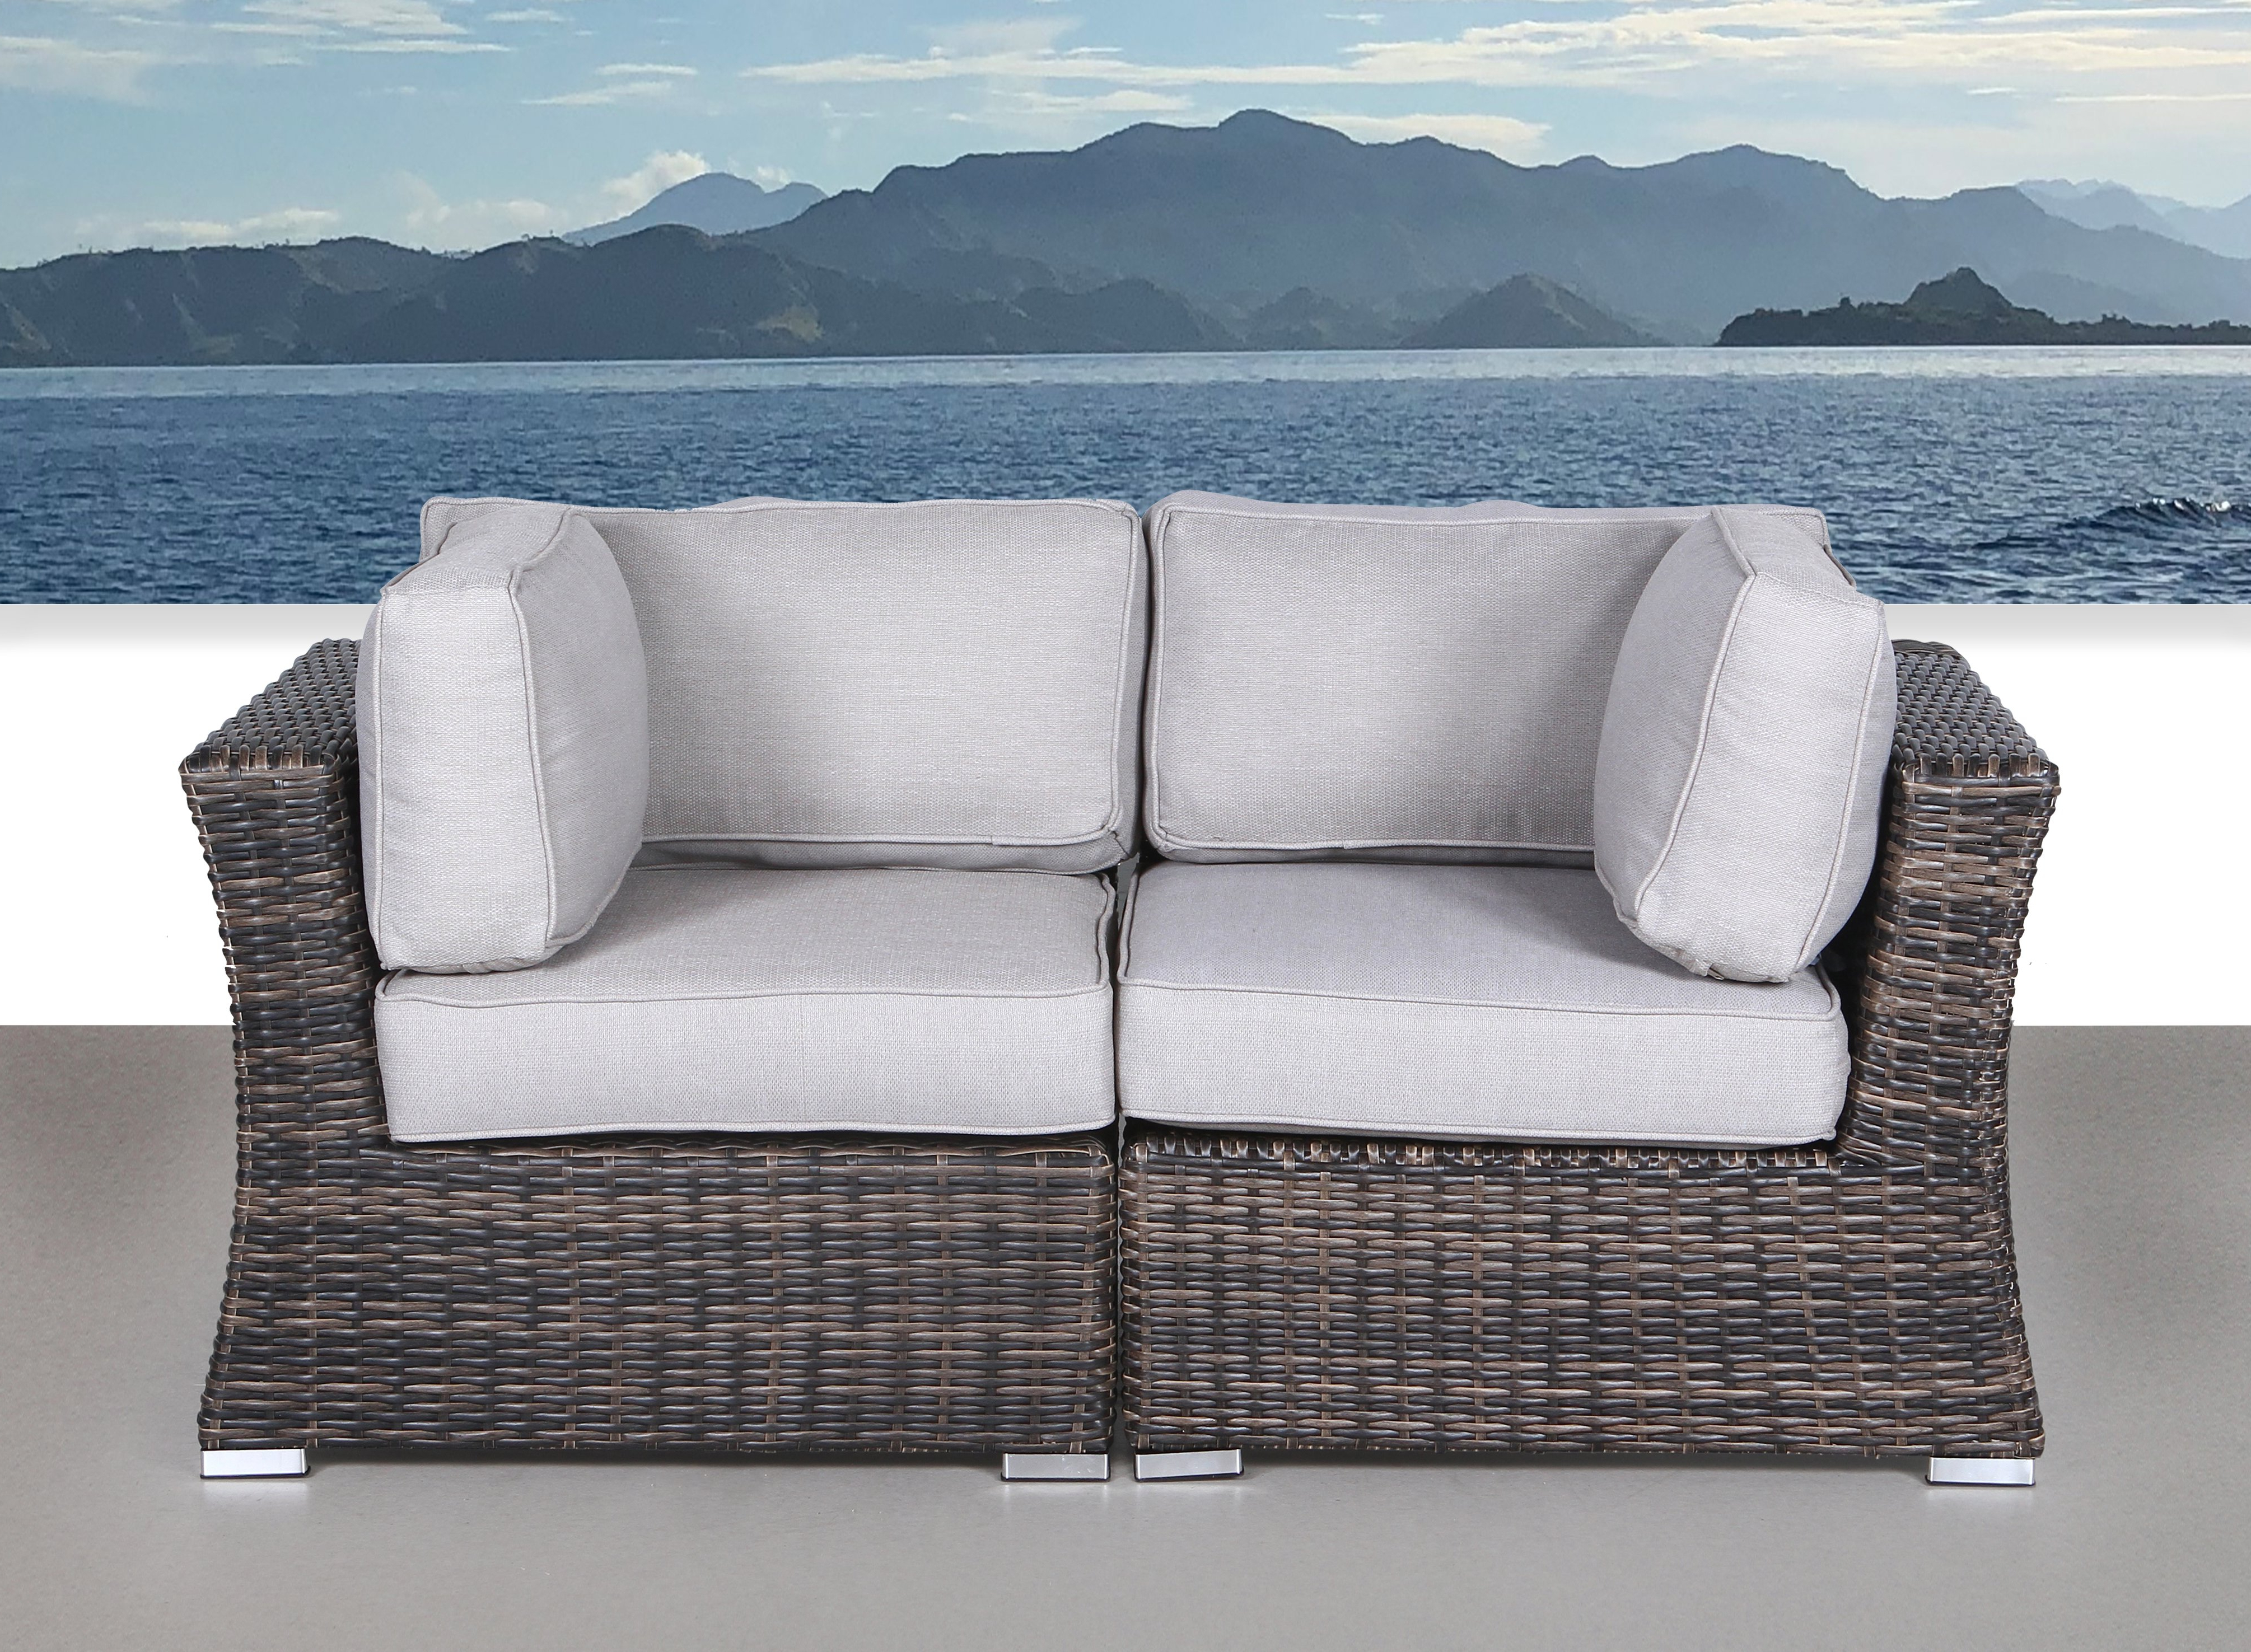 Most Recently Released Provencher Patio Loveseats With Cushions Within Huddleson Contemporary Loveseat With Cushion (View 17 of 20)